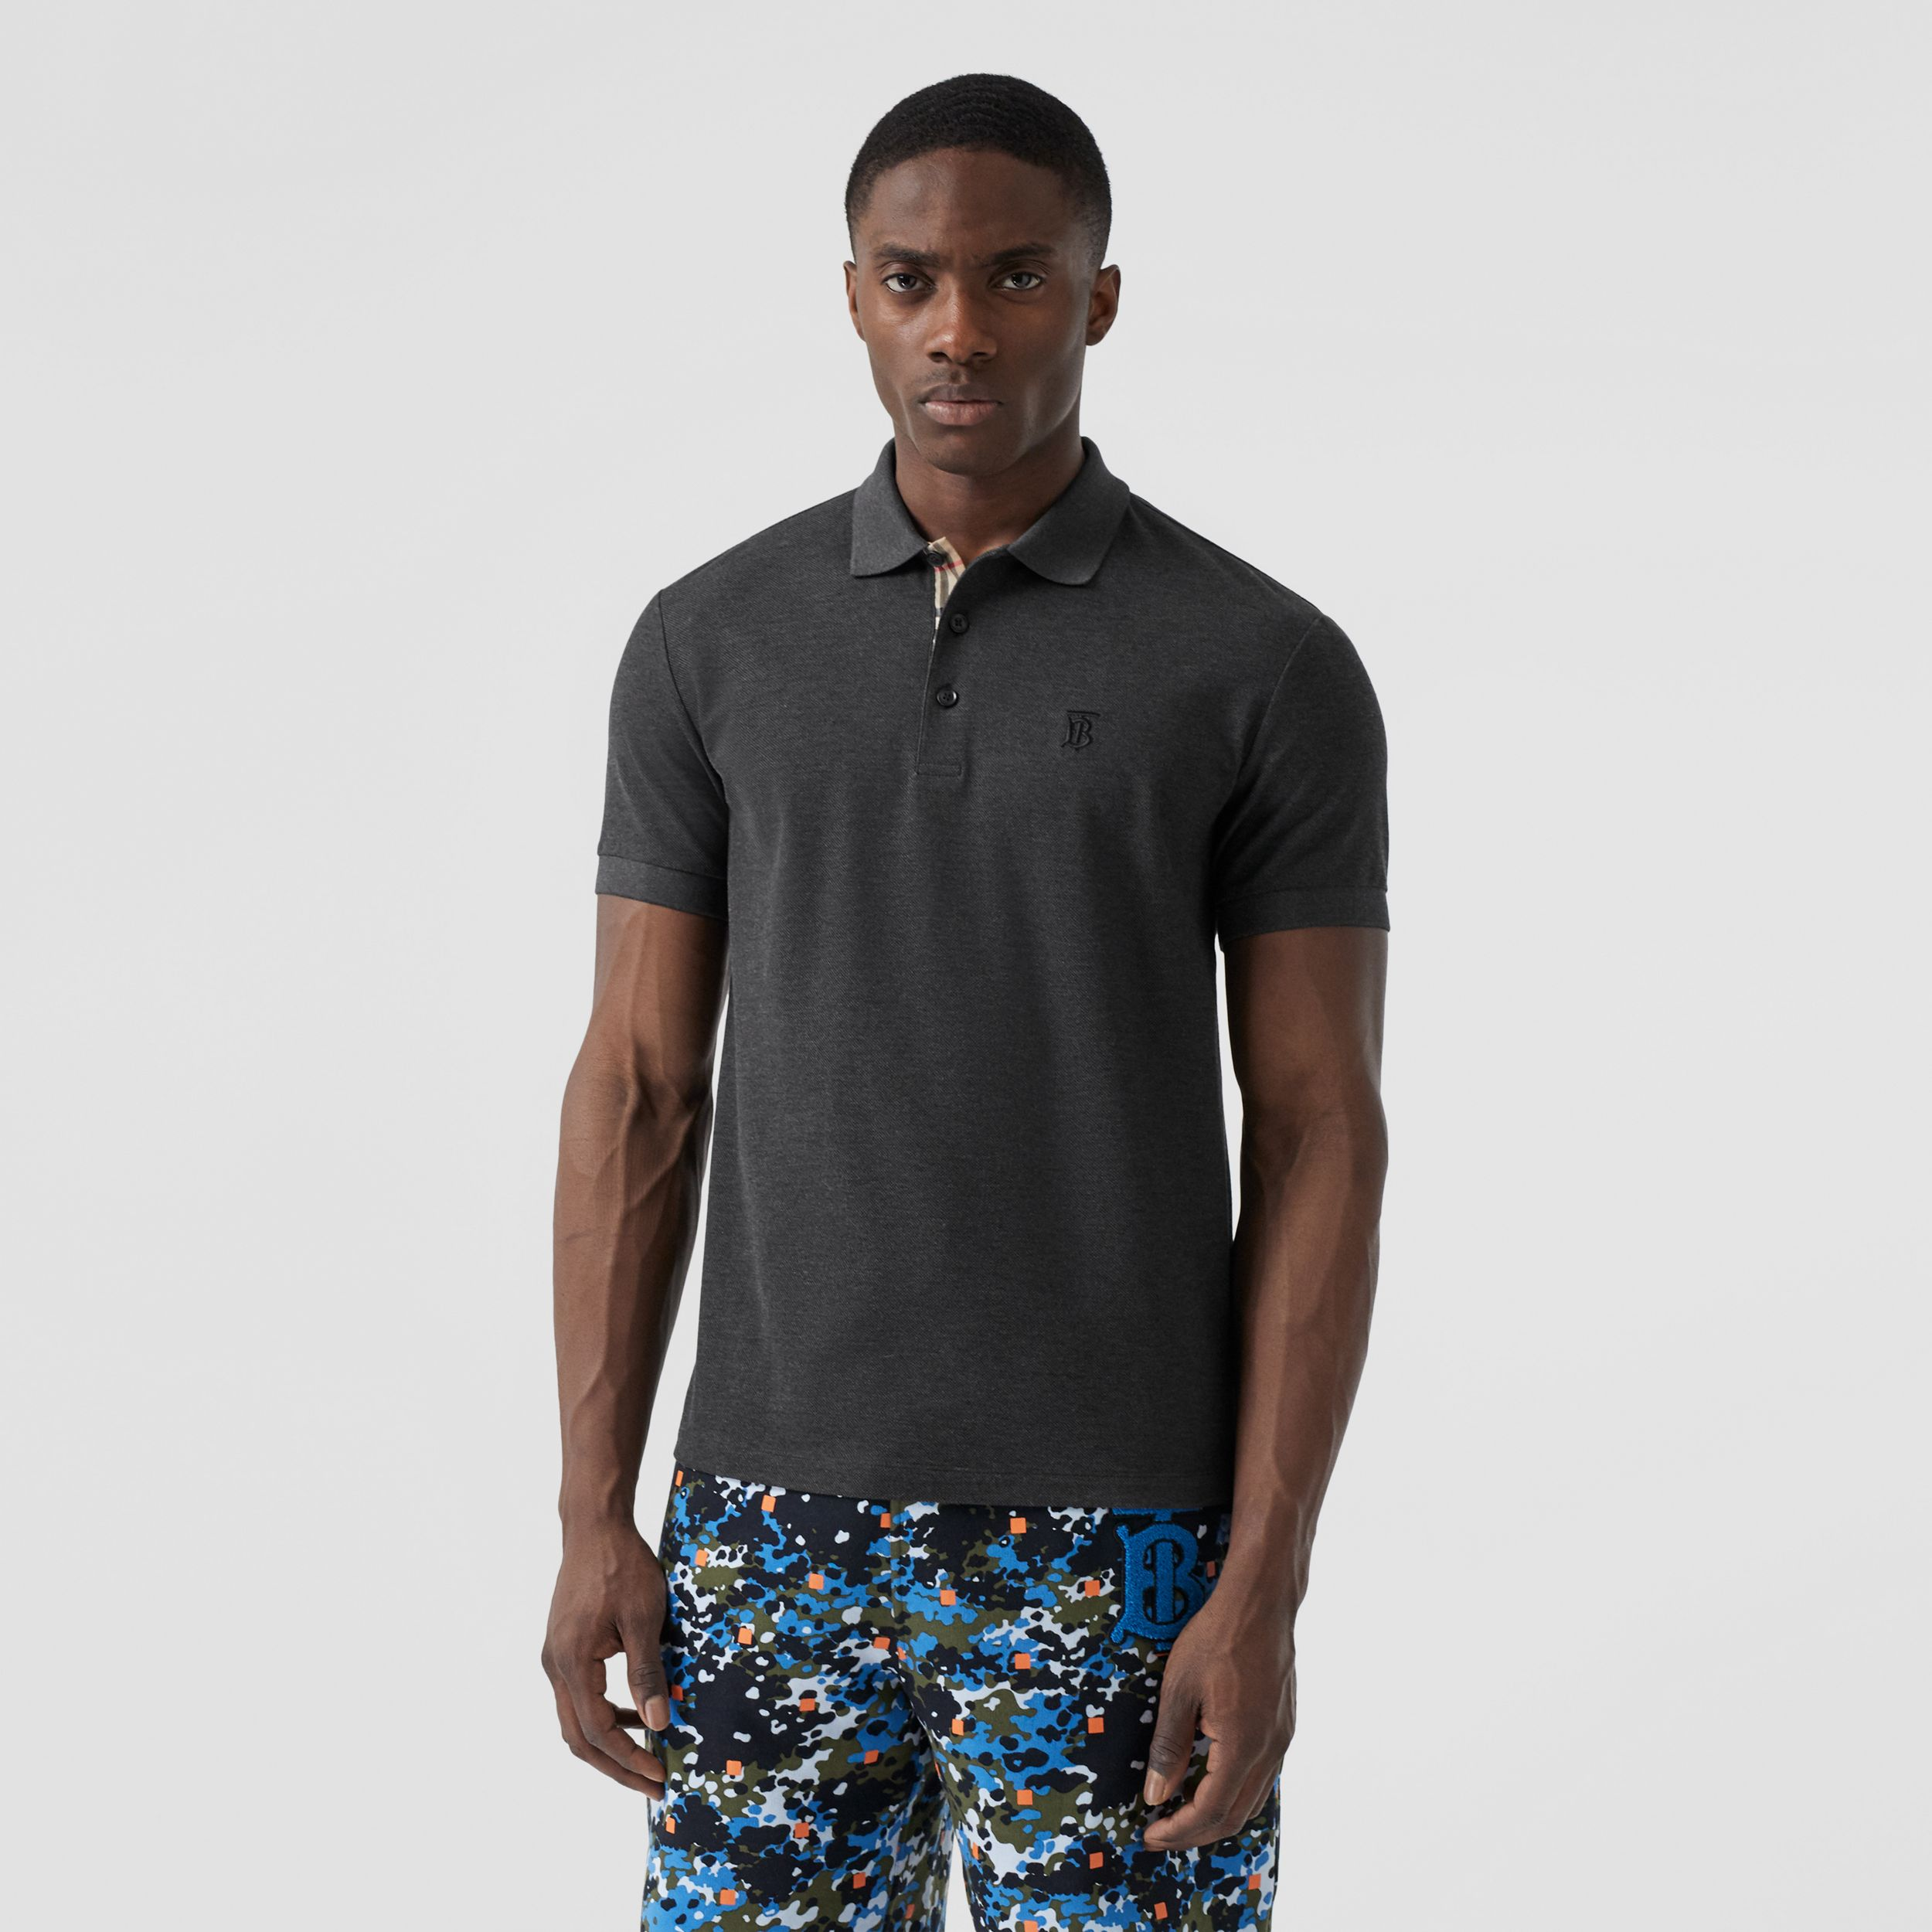 Monogram Motif Cotton Piqué Polo Shirt in Charcoal Melange - Men | Burberry - 1